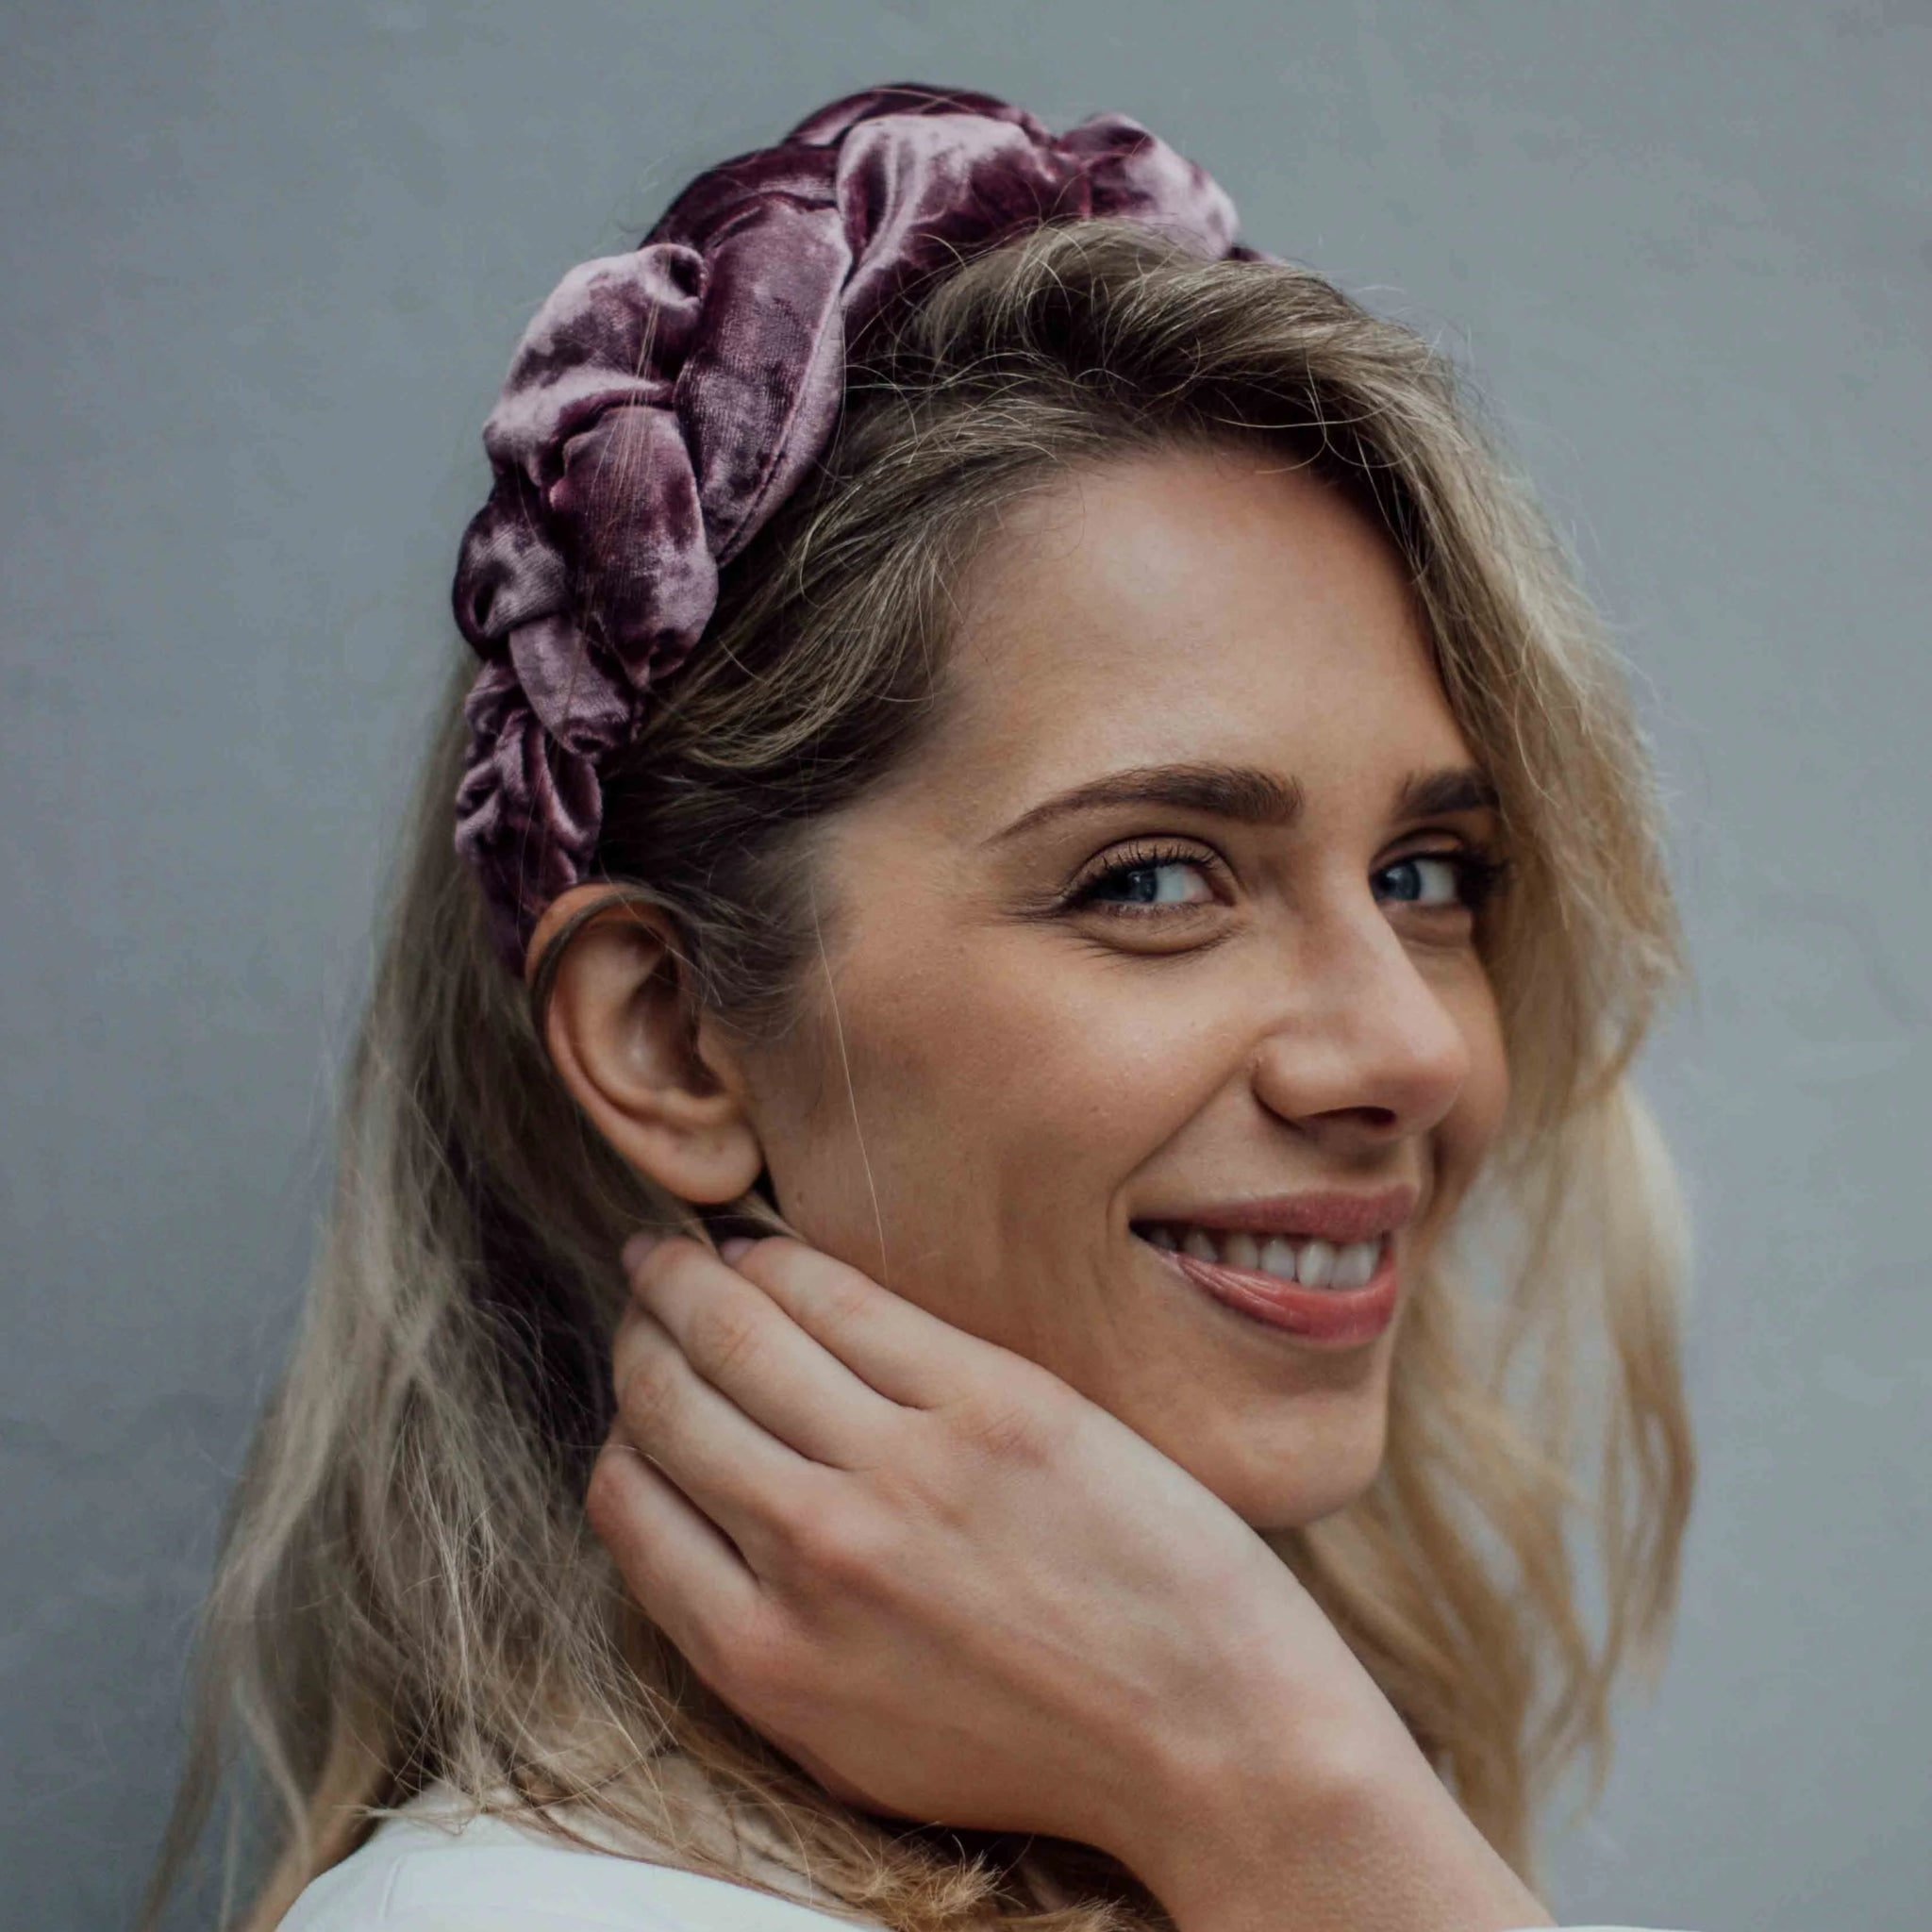 NINA headband in diverse purple/pink